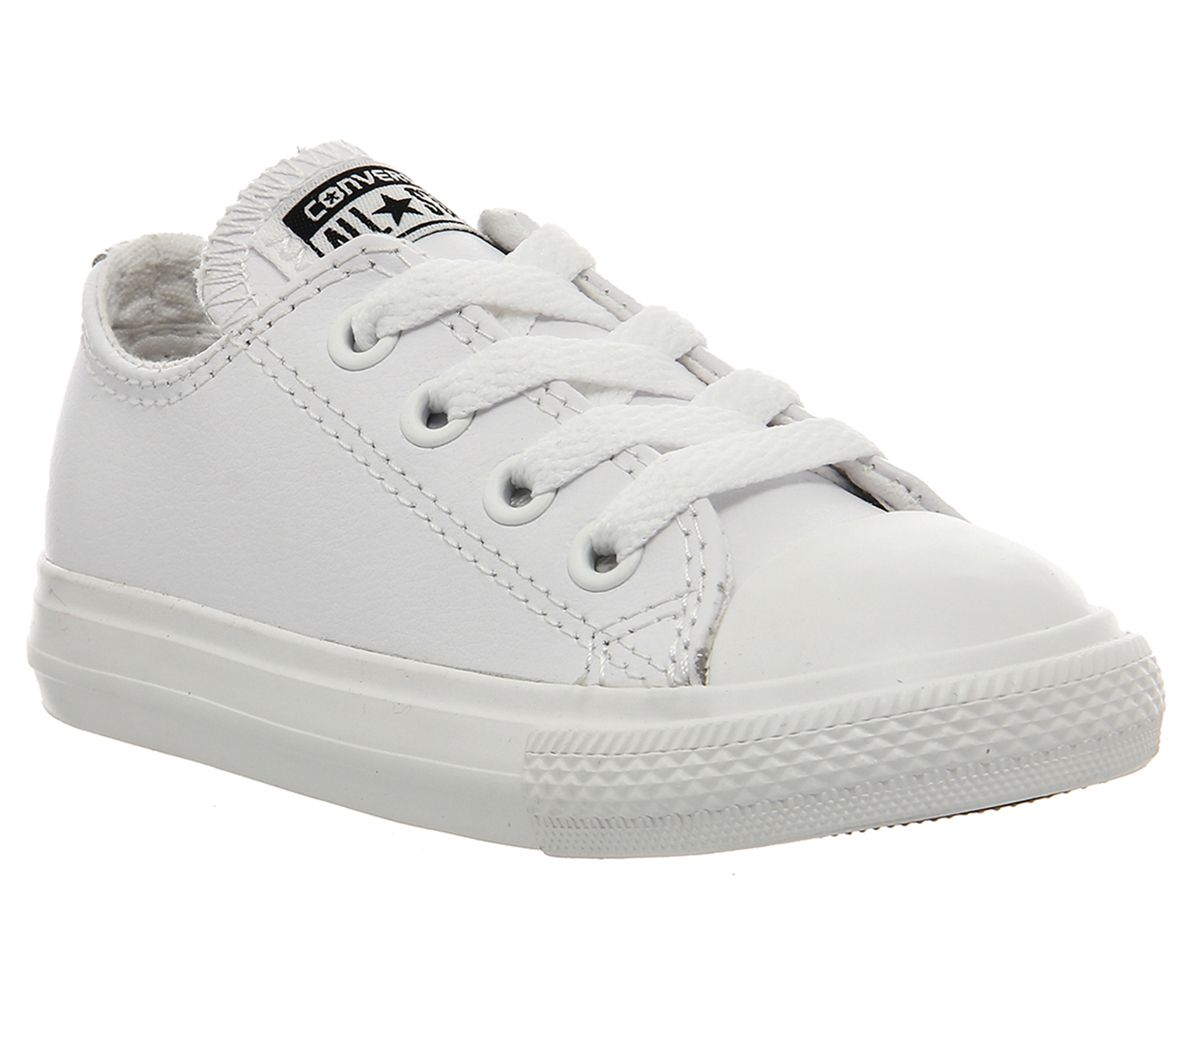 9de6d6f440fbc1 Converse All Star Ox Leather Infant White Mono - Unisex